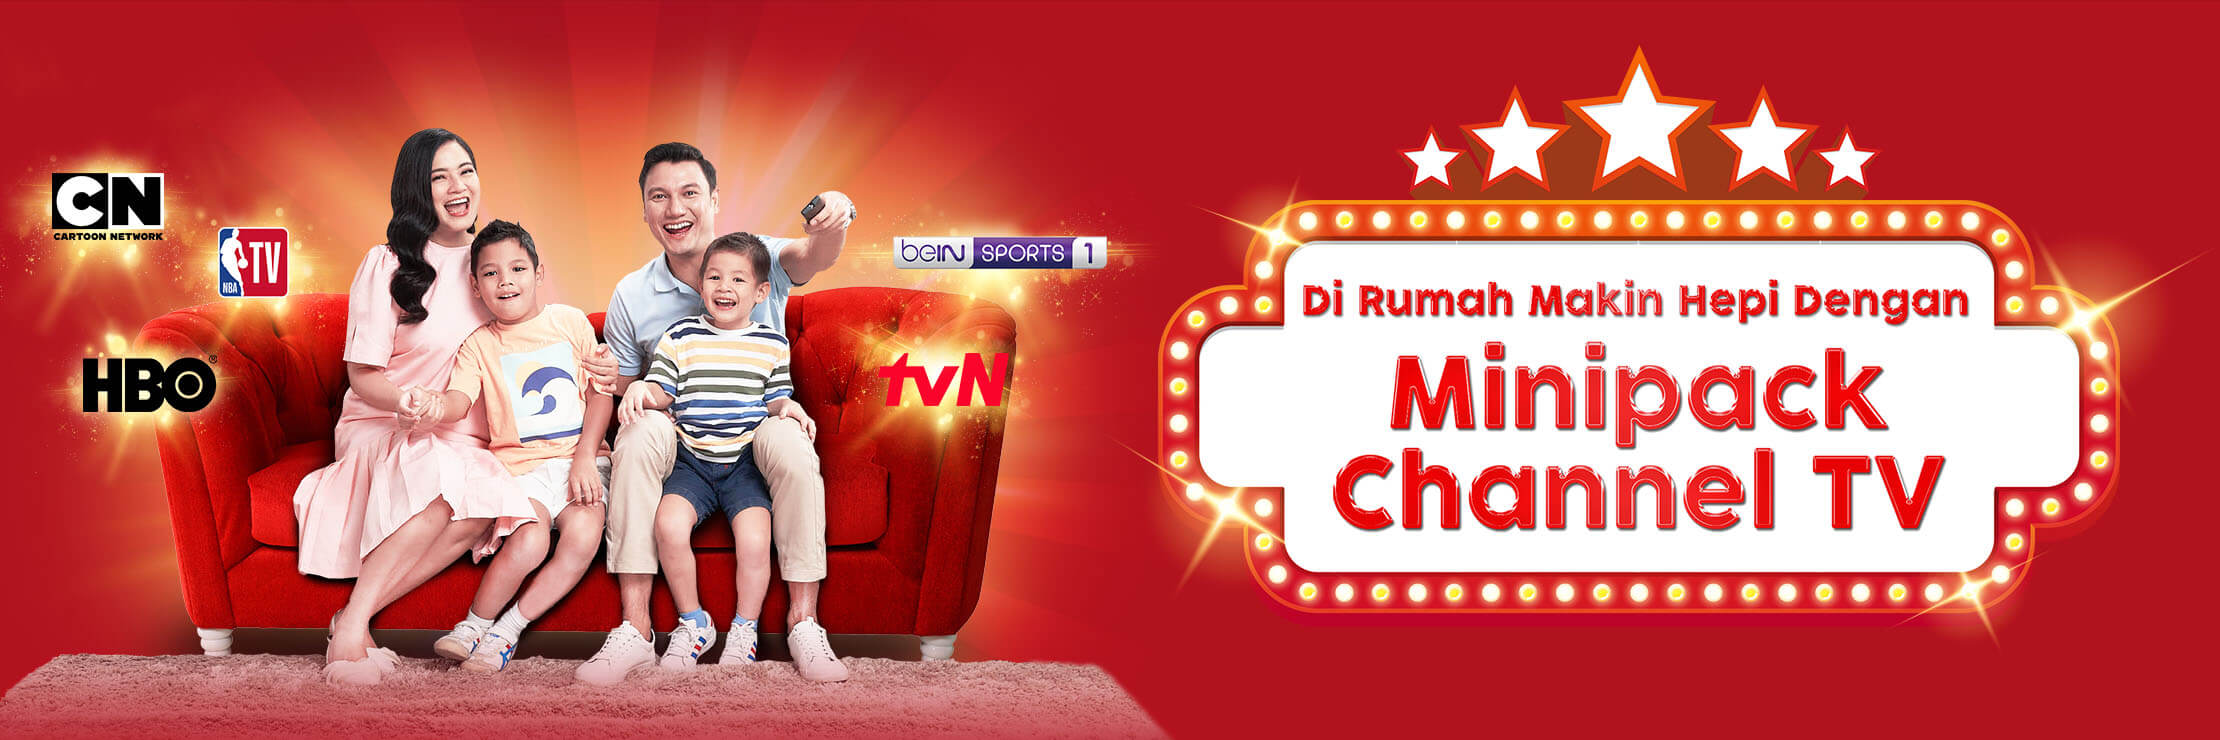 IndiHome Minipack Channel TV